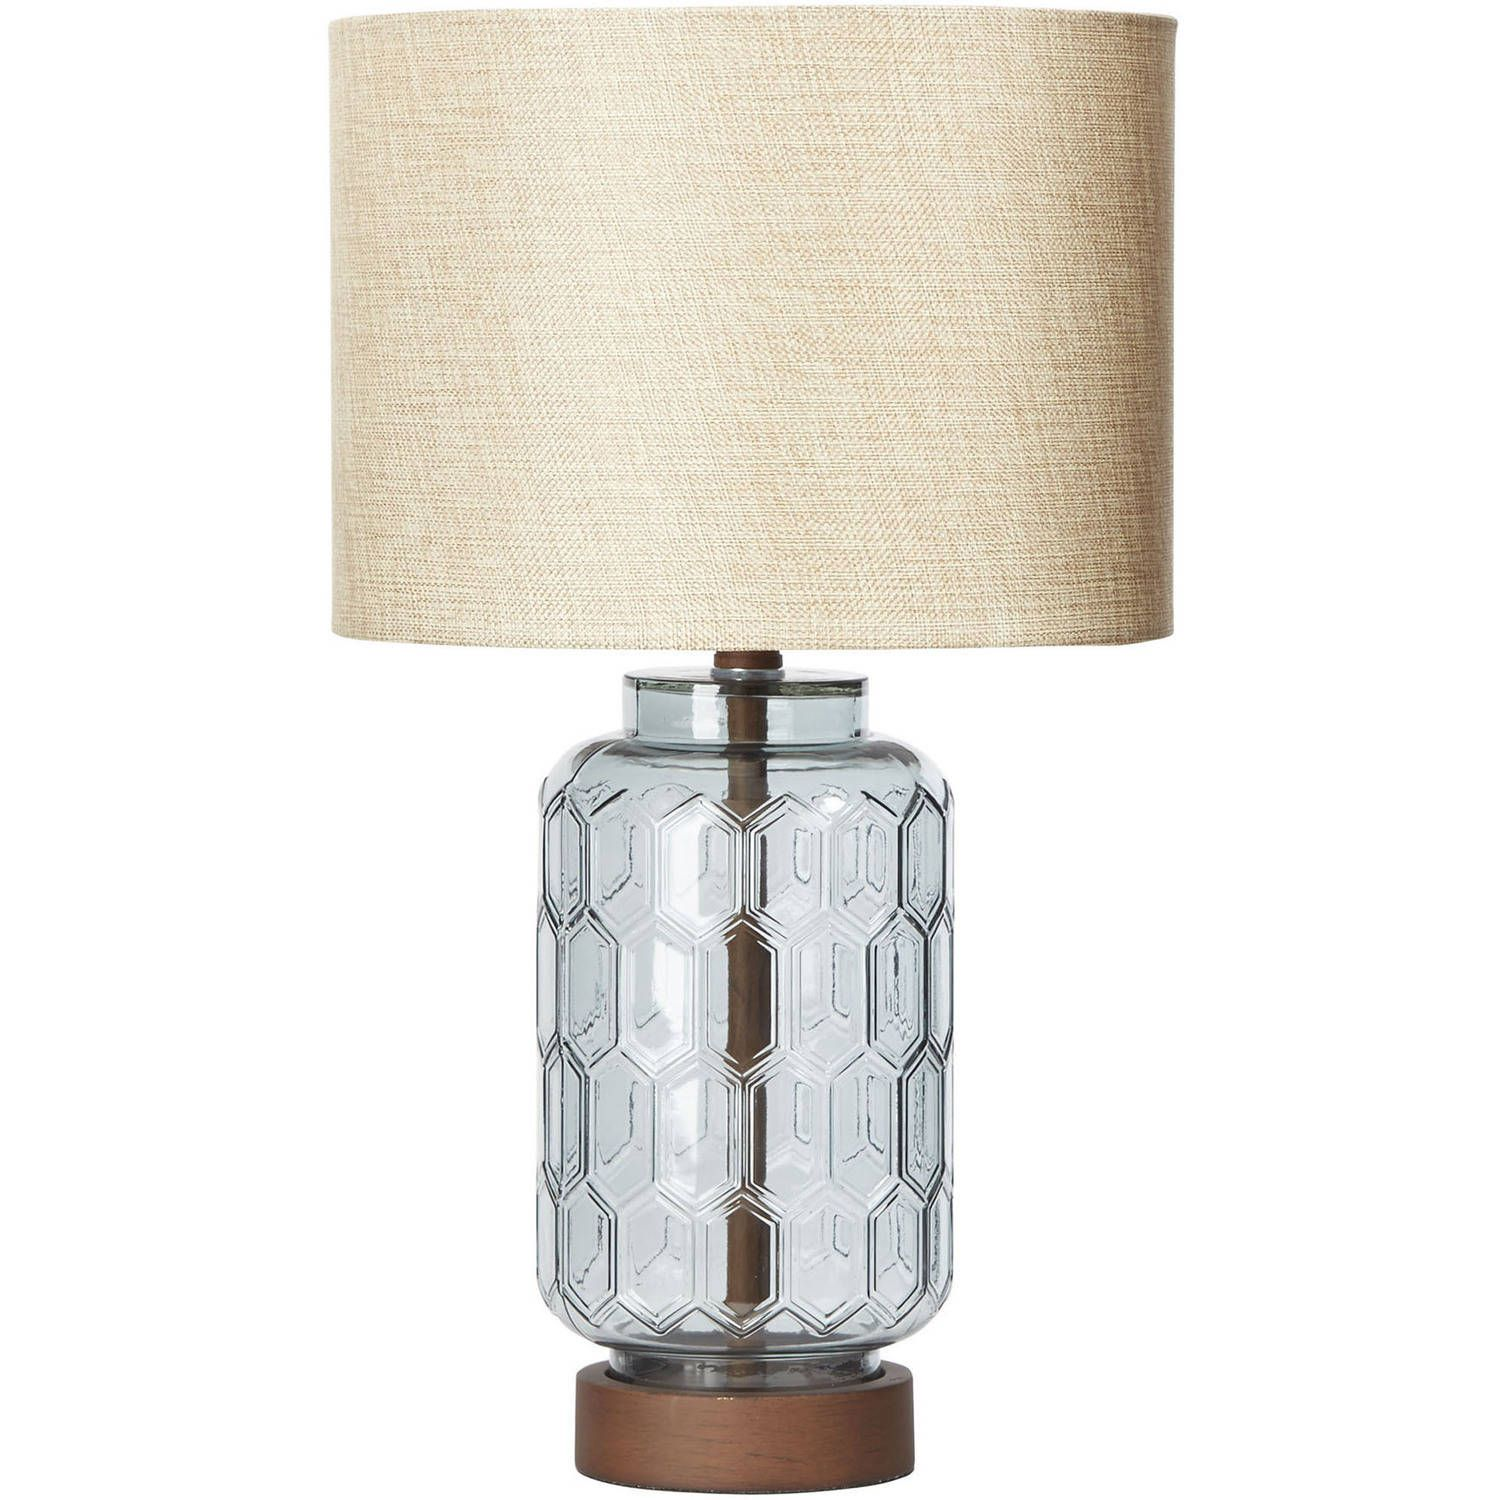 Better Homes Gardens Blue Geo Textured Glass Table Lamp